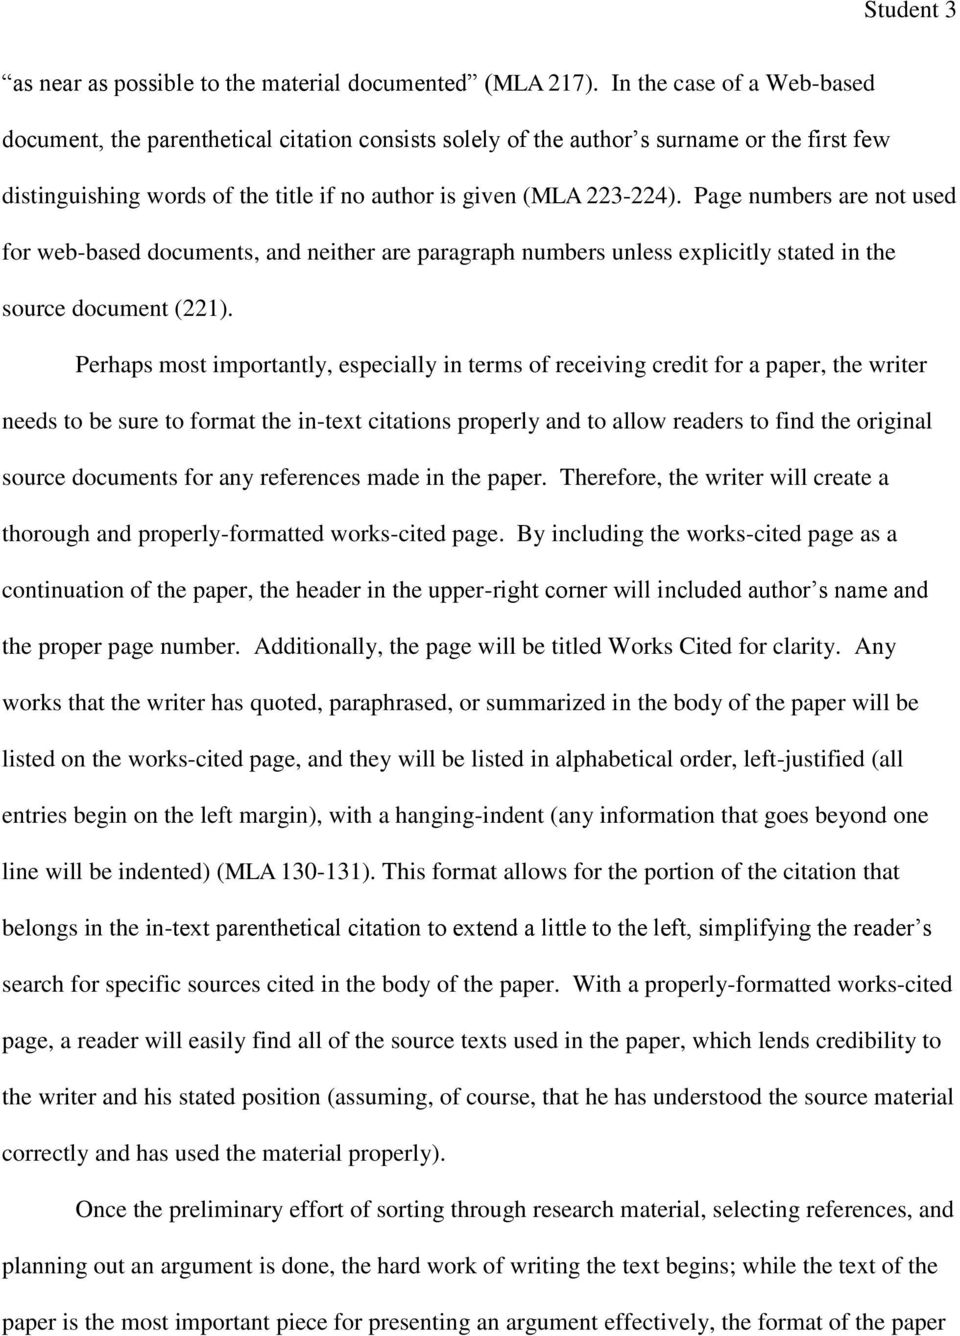 an analysis of parenthetical documentation and mla format Mla format examples parenthetical citation examples: page specified, author mentioned in text: if the author's name already appears in the sentence itself then it does not need to appear in the parentheses only the page number appears in the citation - this is called 'author prominent' because it draws attention to the author.